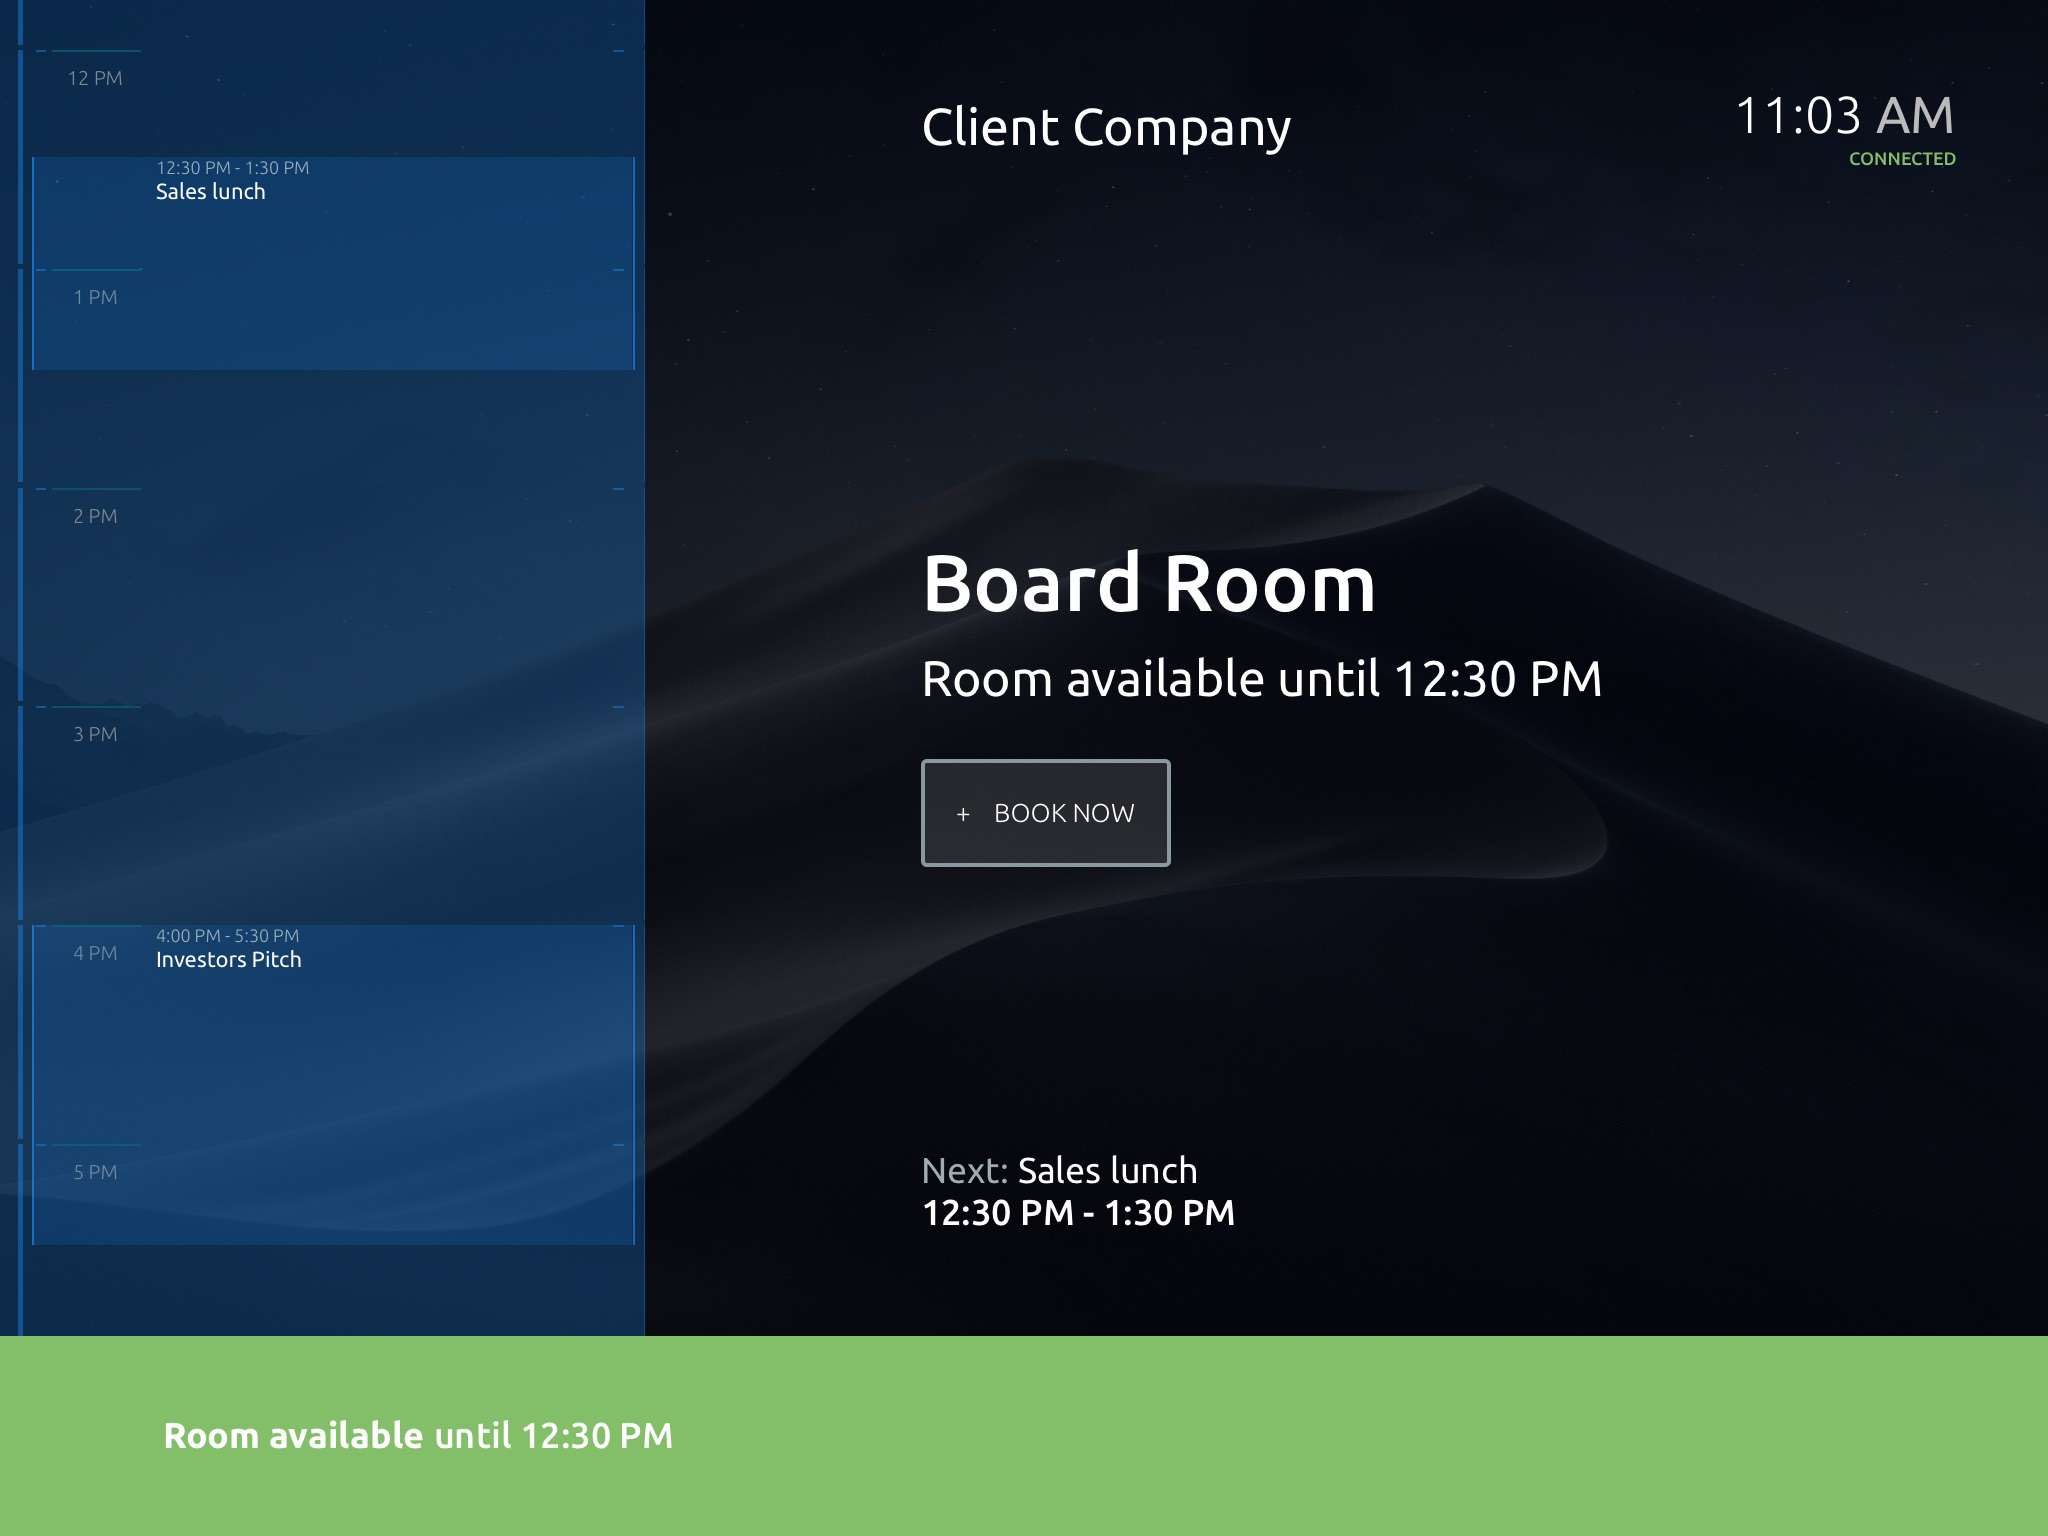 Tablet app - available